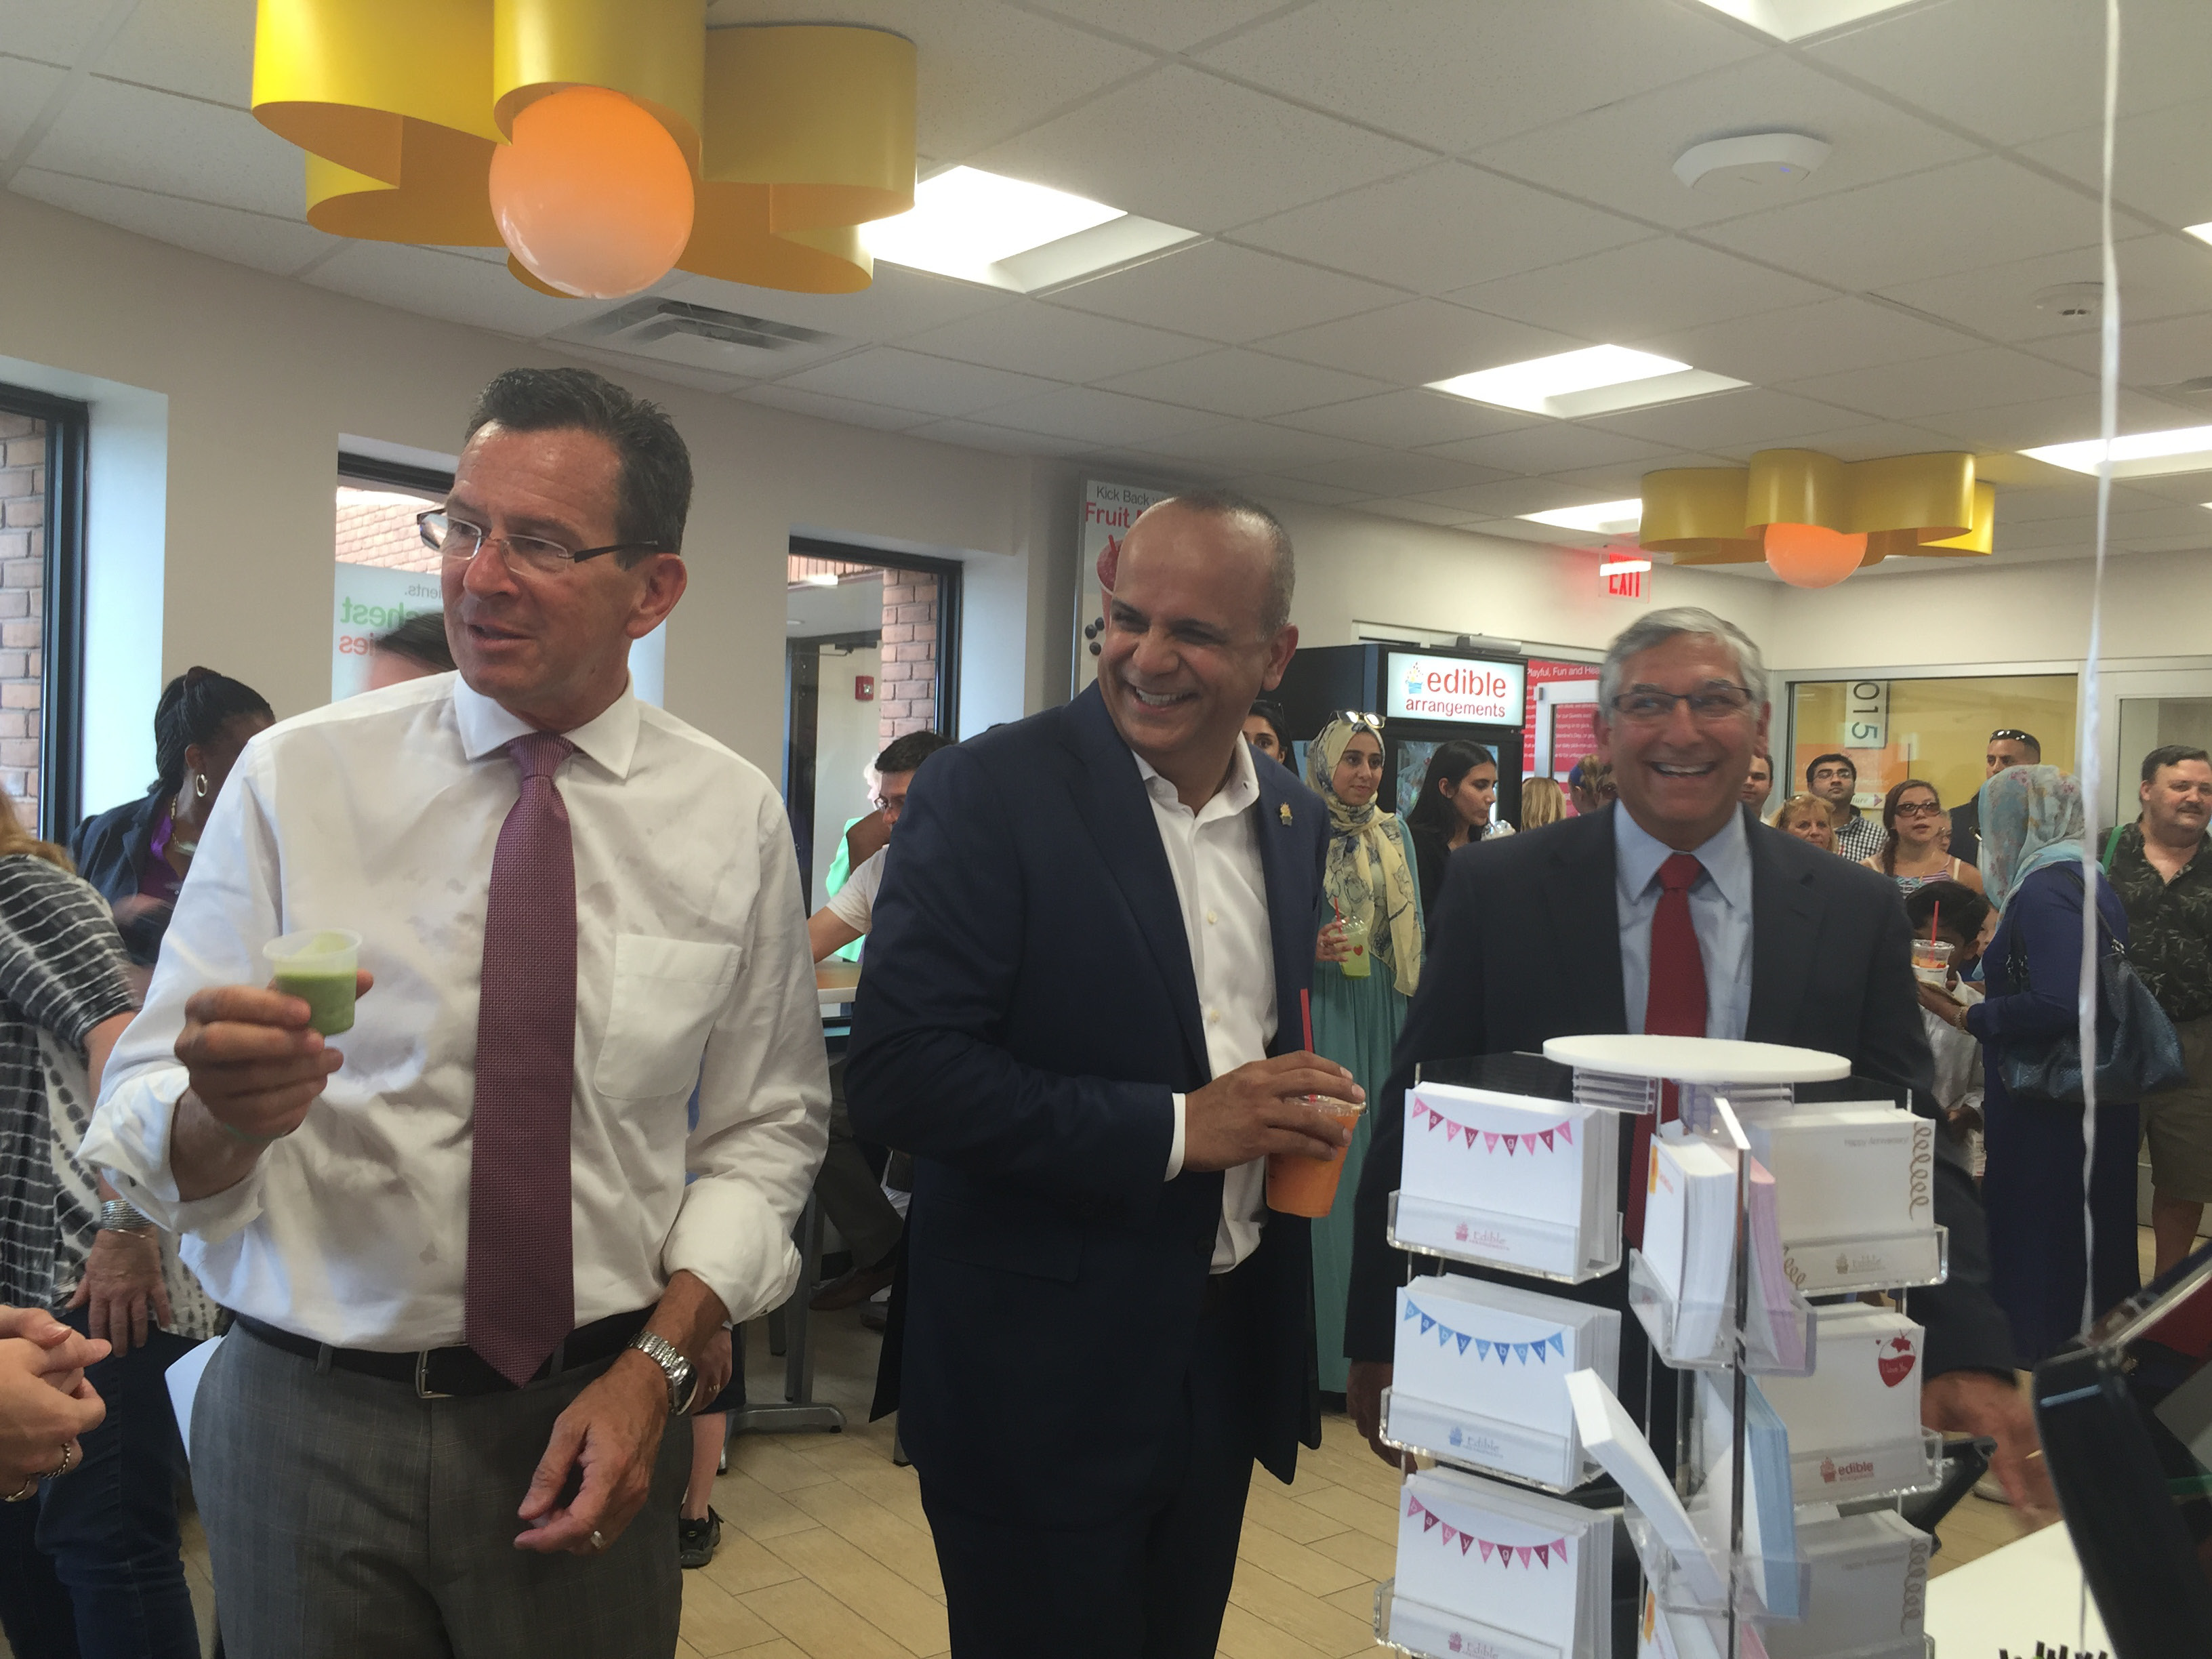 Gov. Dannel P. Malloy, Edible Arrangments founder and CEO Tariq Farid and state Sen. Len Fasano, R-North Haven, enjoy smoothies Wednesday at the grand opening ceremony for Edible Arrangements flagship store at its Barnes Road corporate headquarters in Wallingford. | Leigh Tauss, Record-Journal